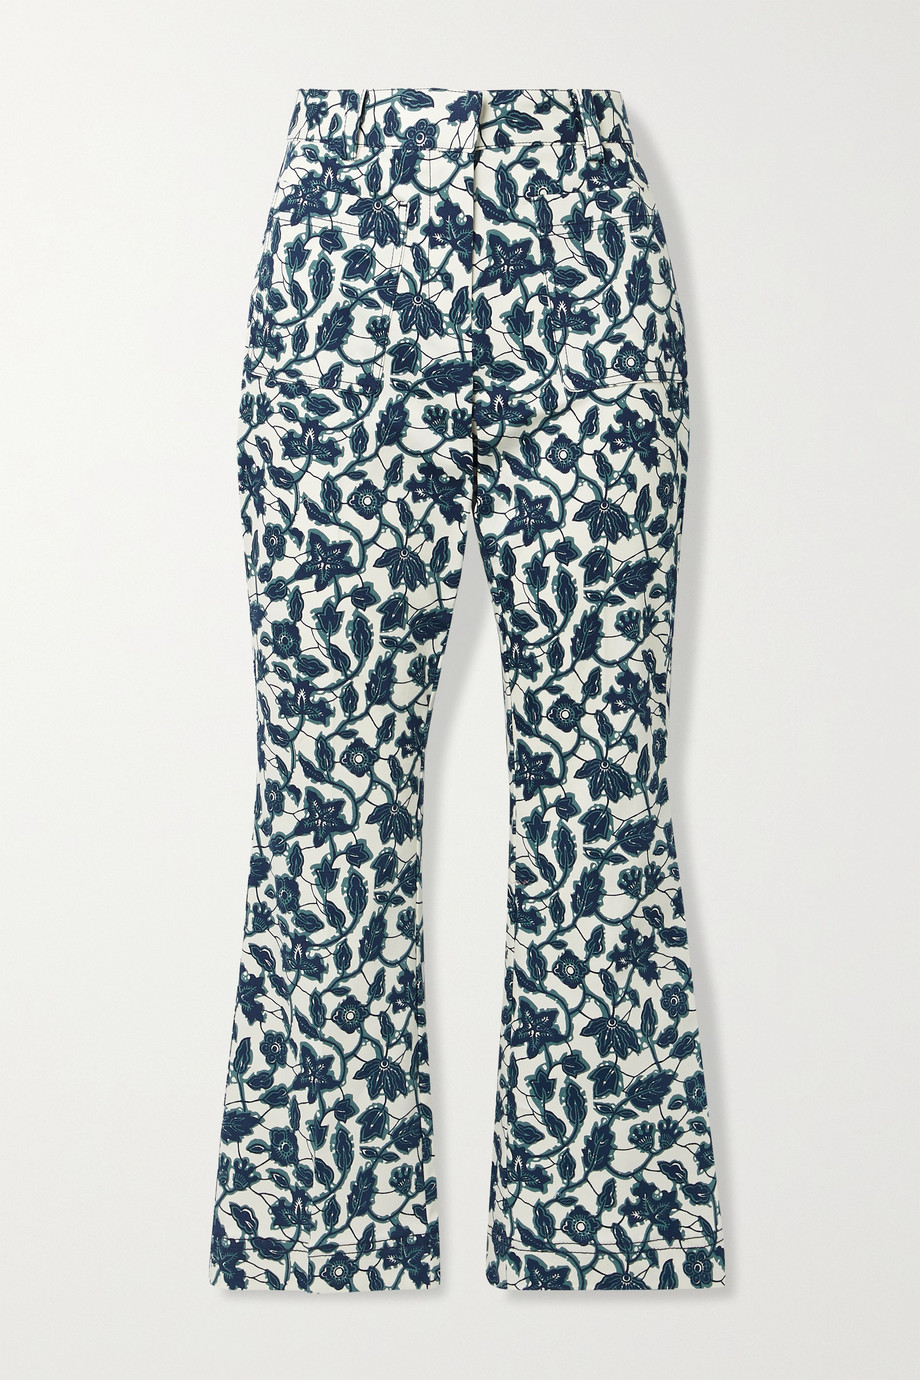 DEREK LAM 10 CROSBY Laurie cropped floral-print cotton-blend twill flared pants